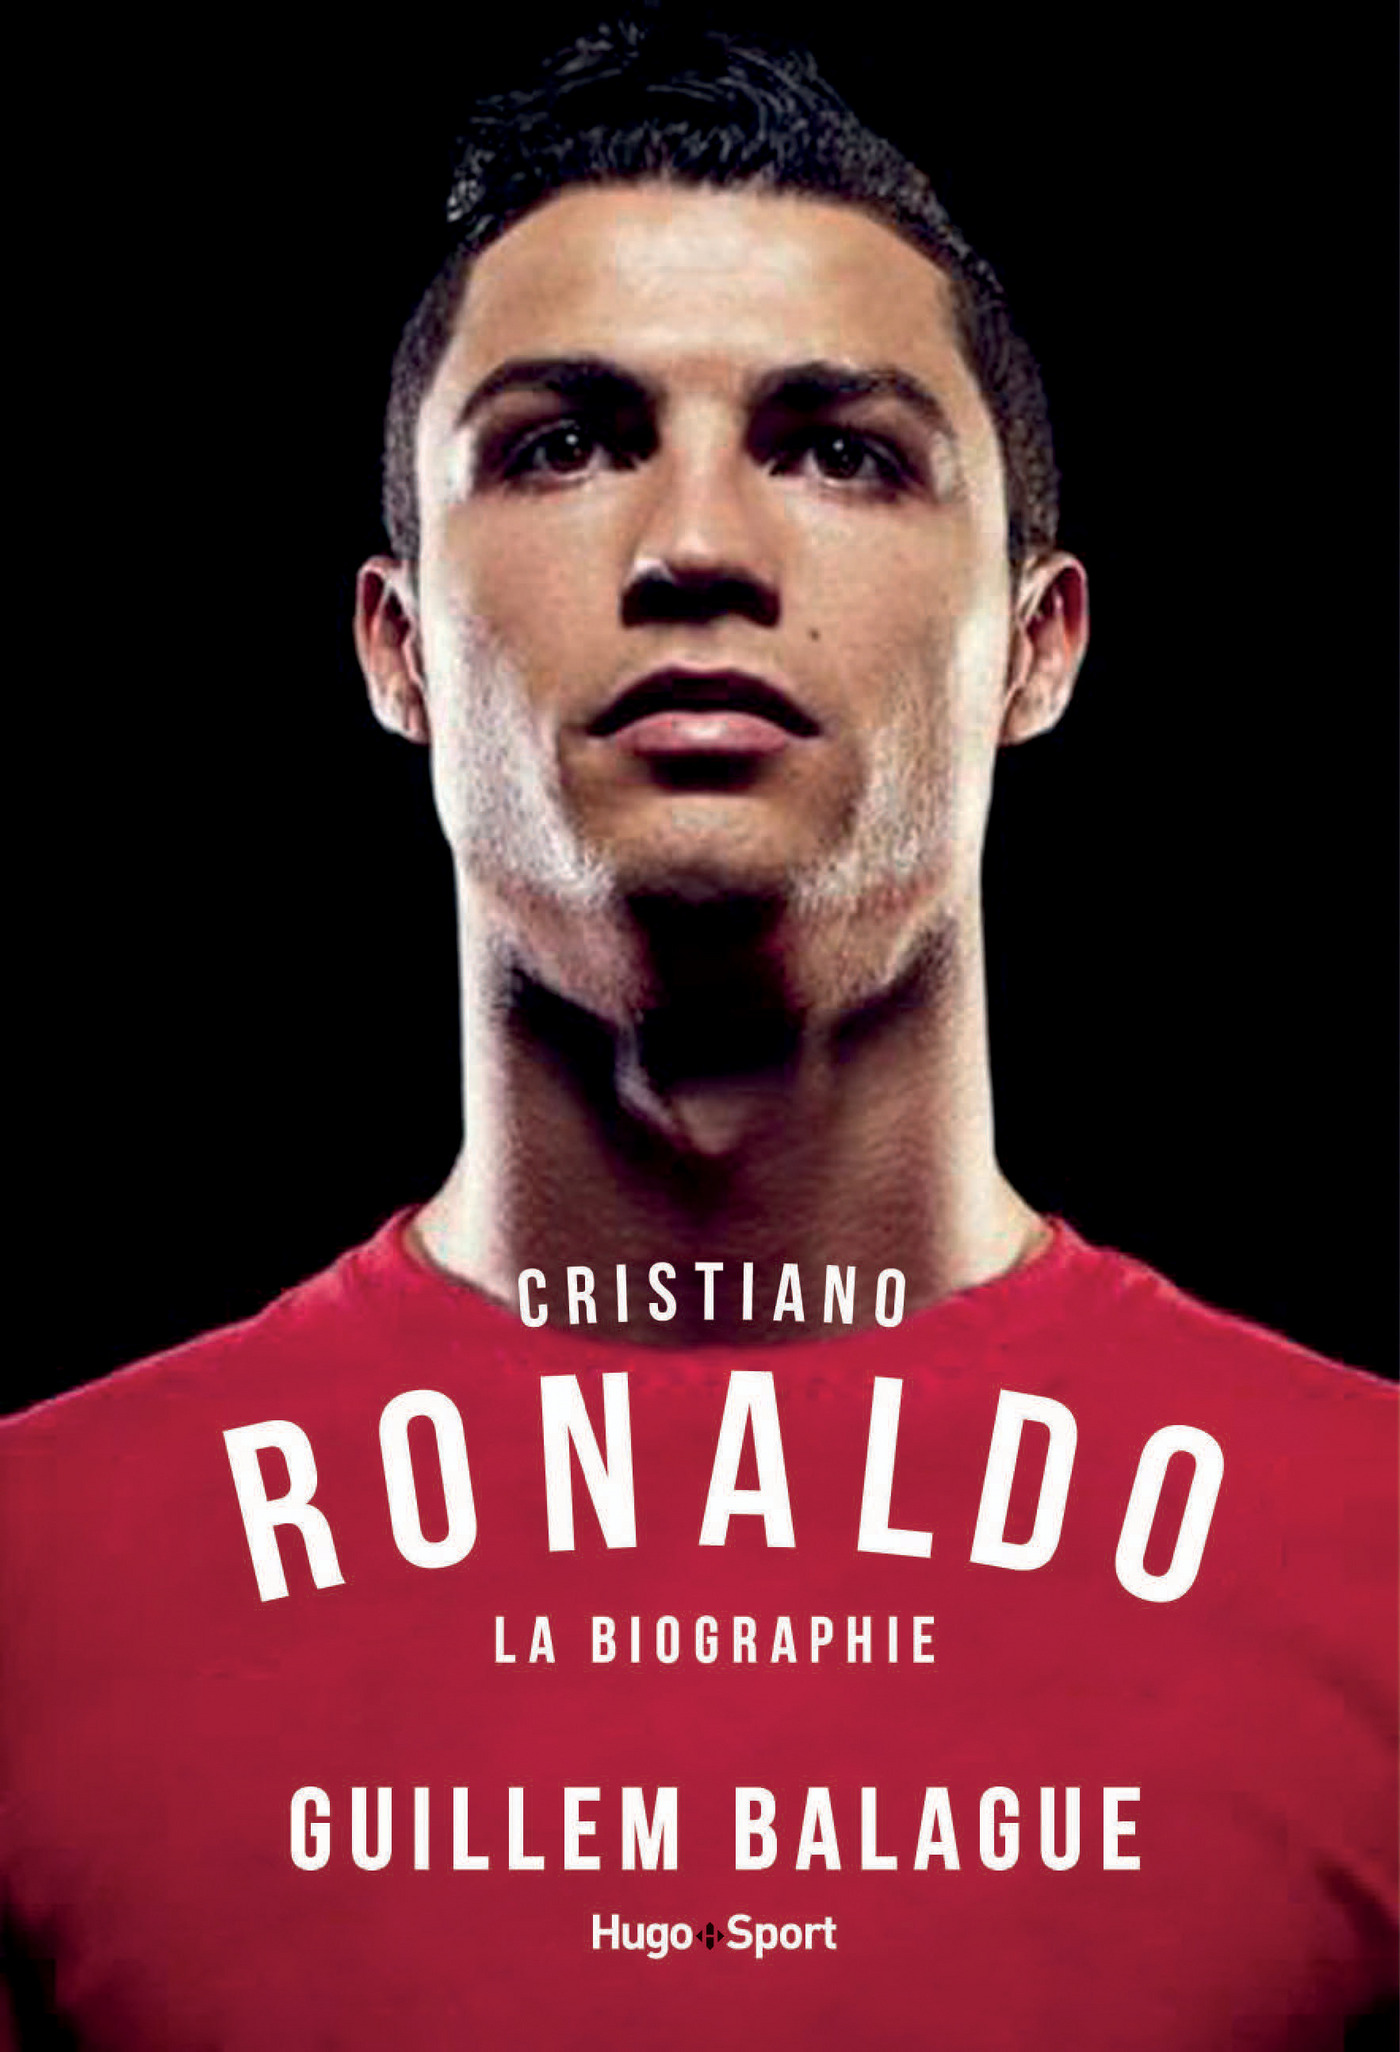 Cristiano Ronaldo La biographie (ebook)